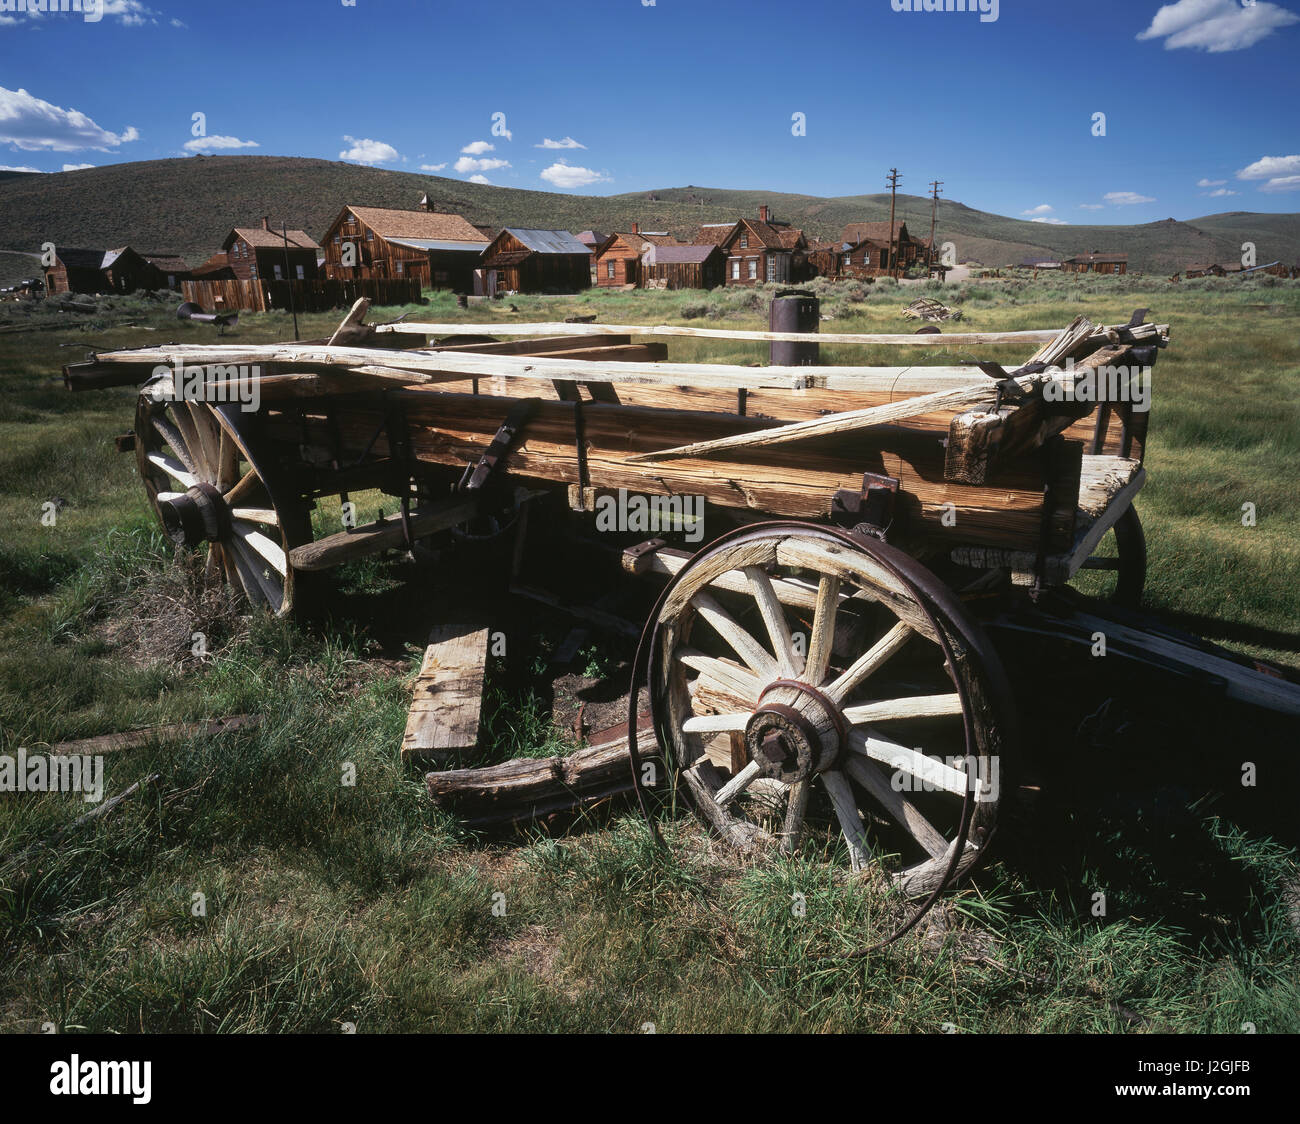 USA, California, Bodie State Historic Park, An old wagon and buildings in a western ghost town. (Large format sizes - Stock Image